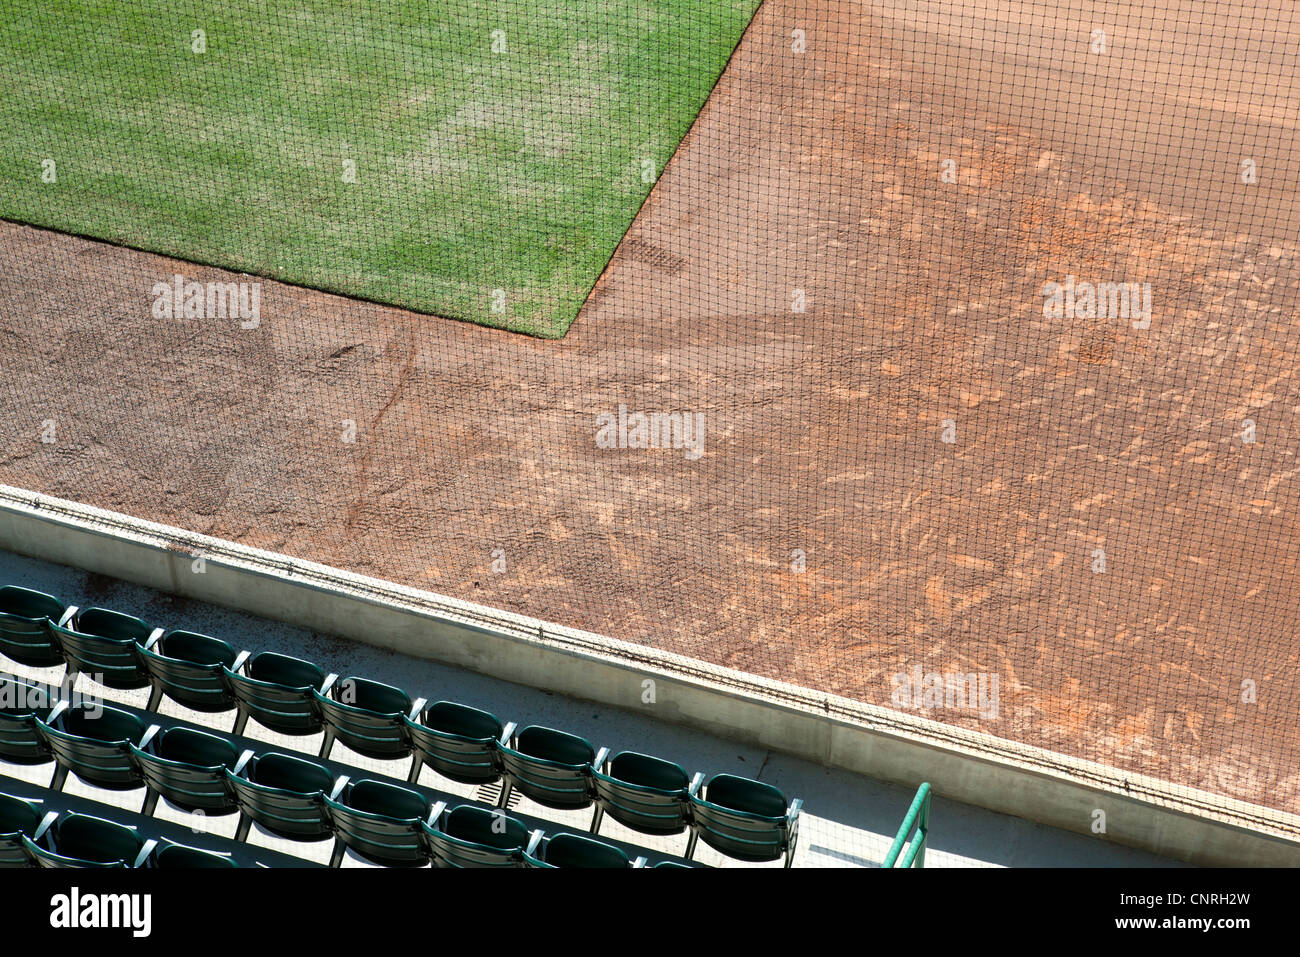 Sports field, overhead view - Stock Image